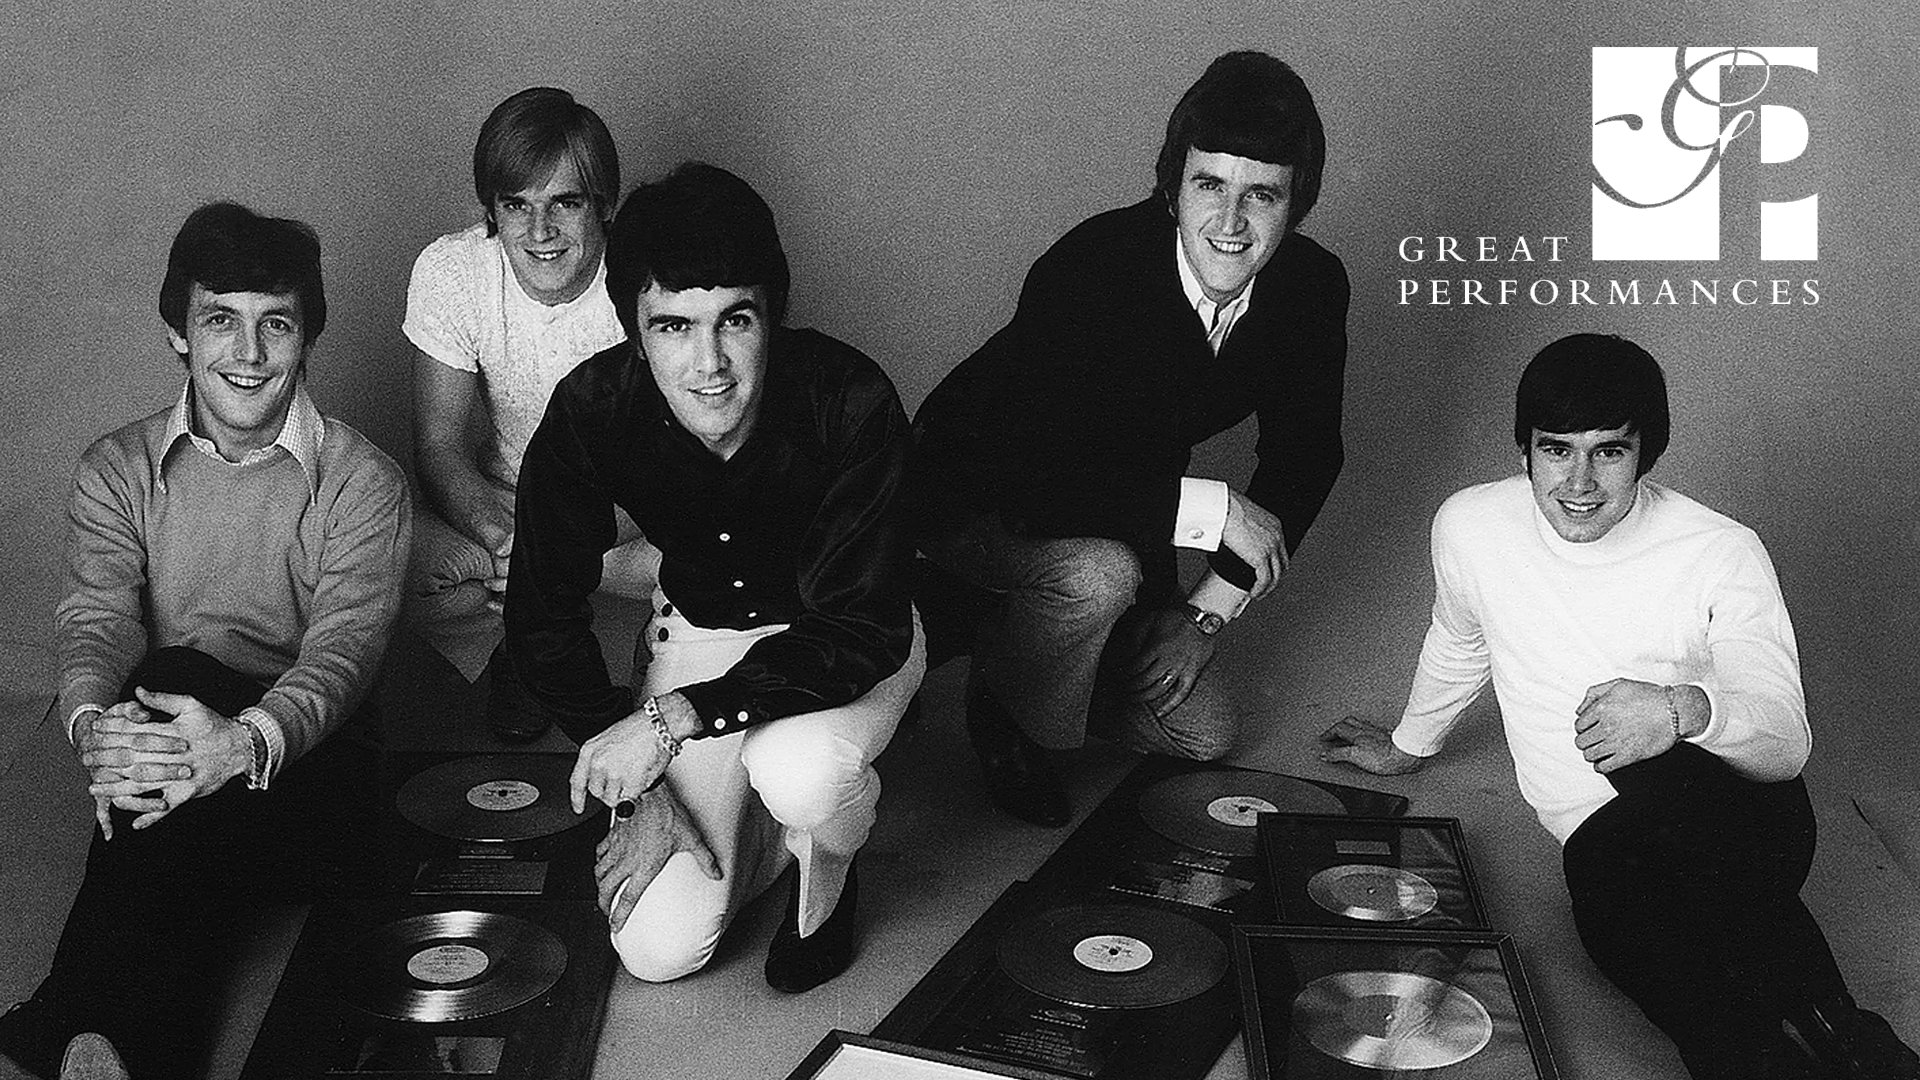 GREAT PERFORMANCES The Dave Clark Five - Glad All Over